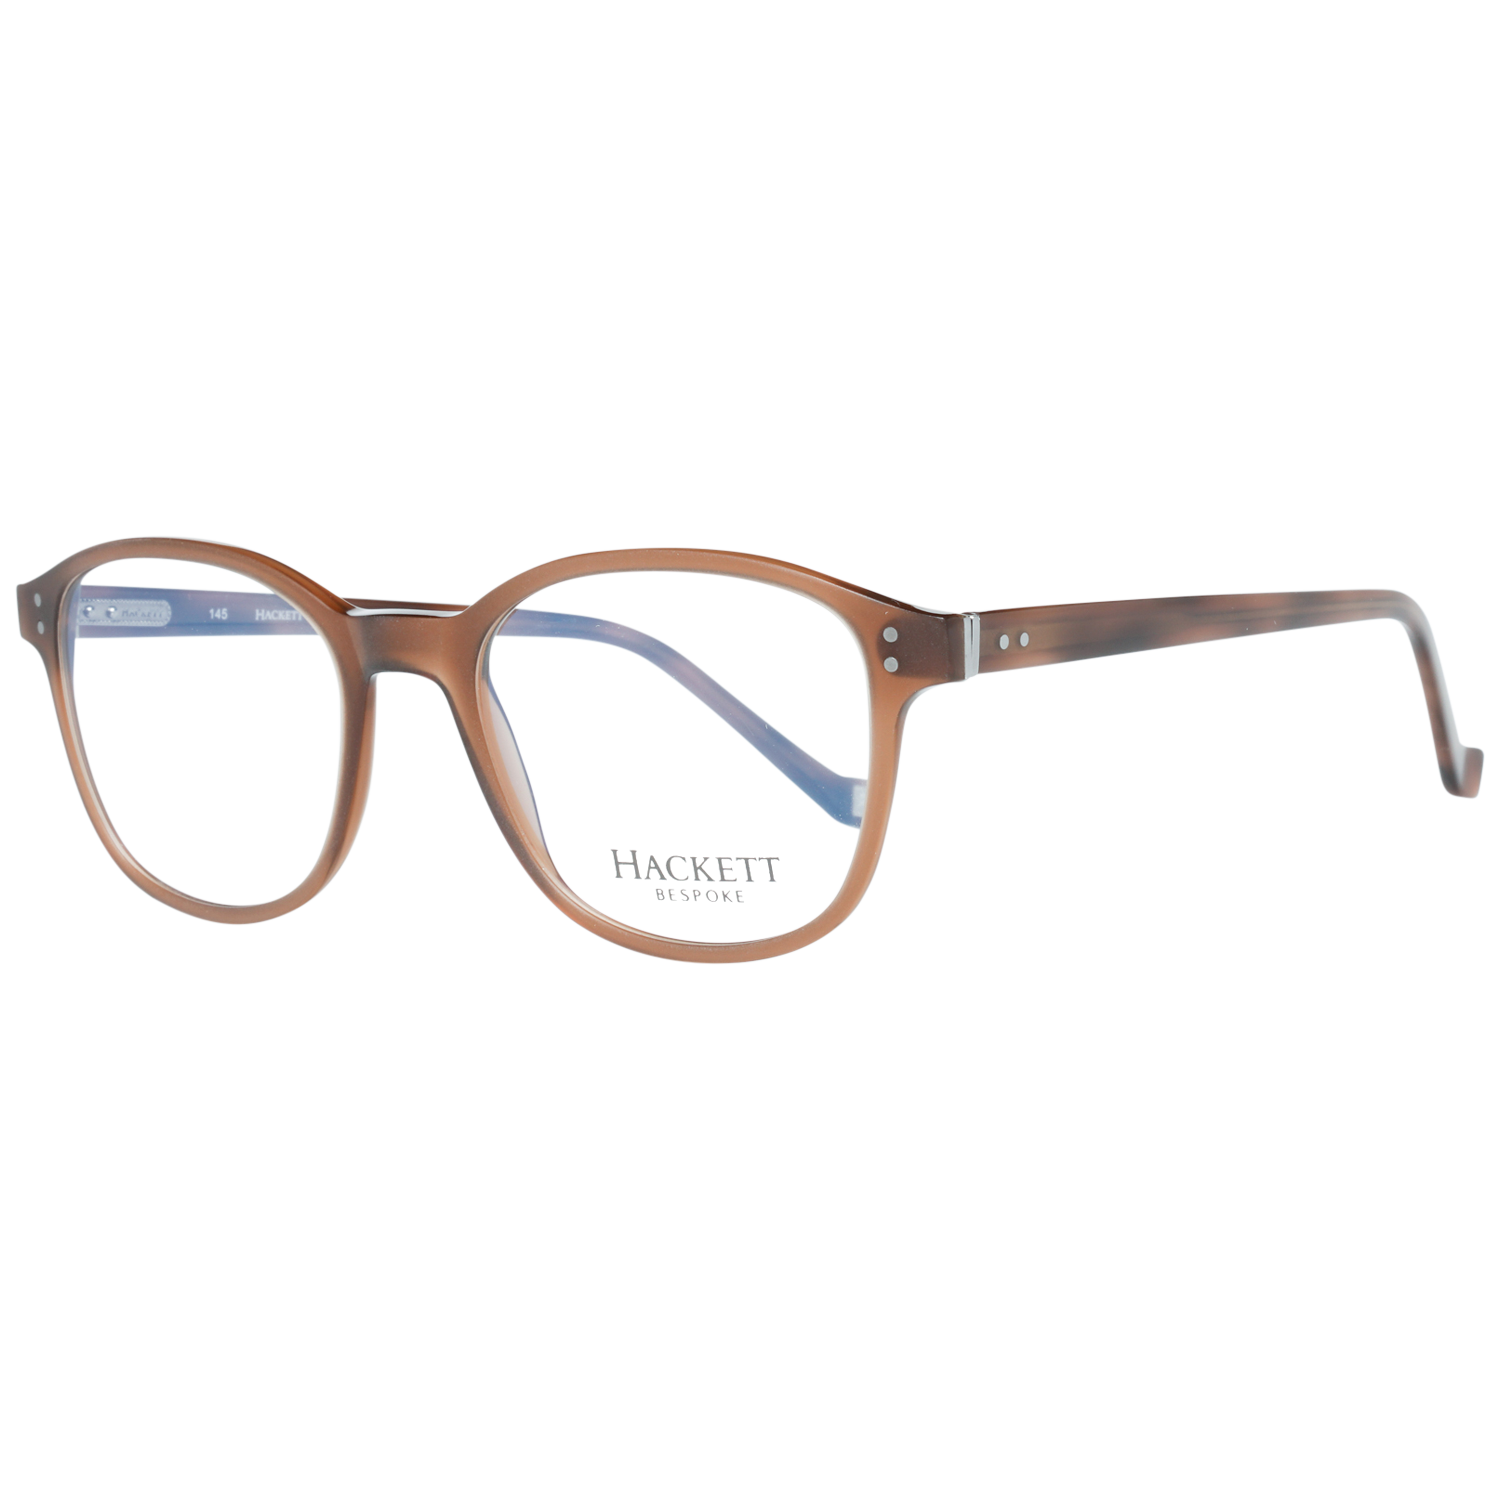 Hackett Bespoke Optical Frame HEB206 151 50 Brown